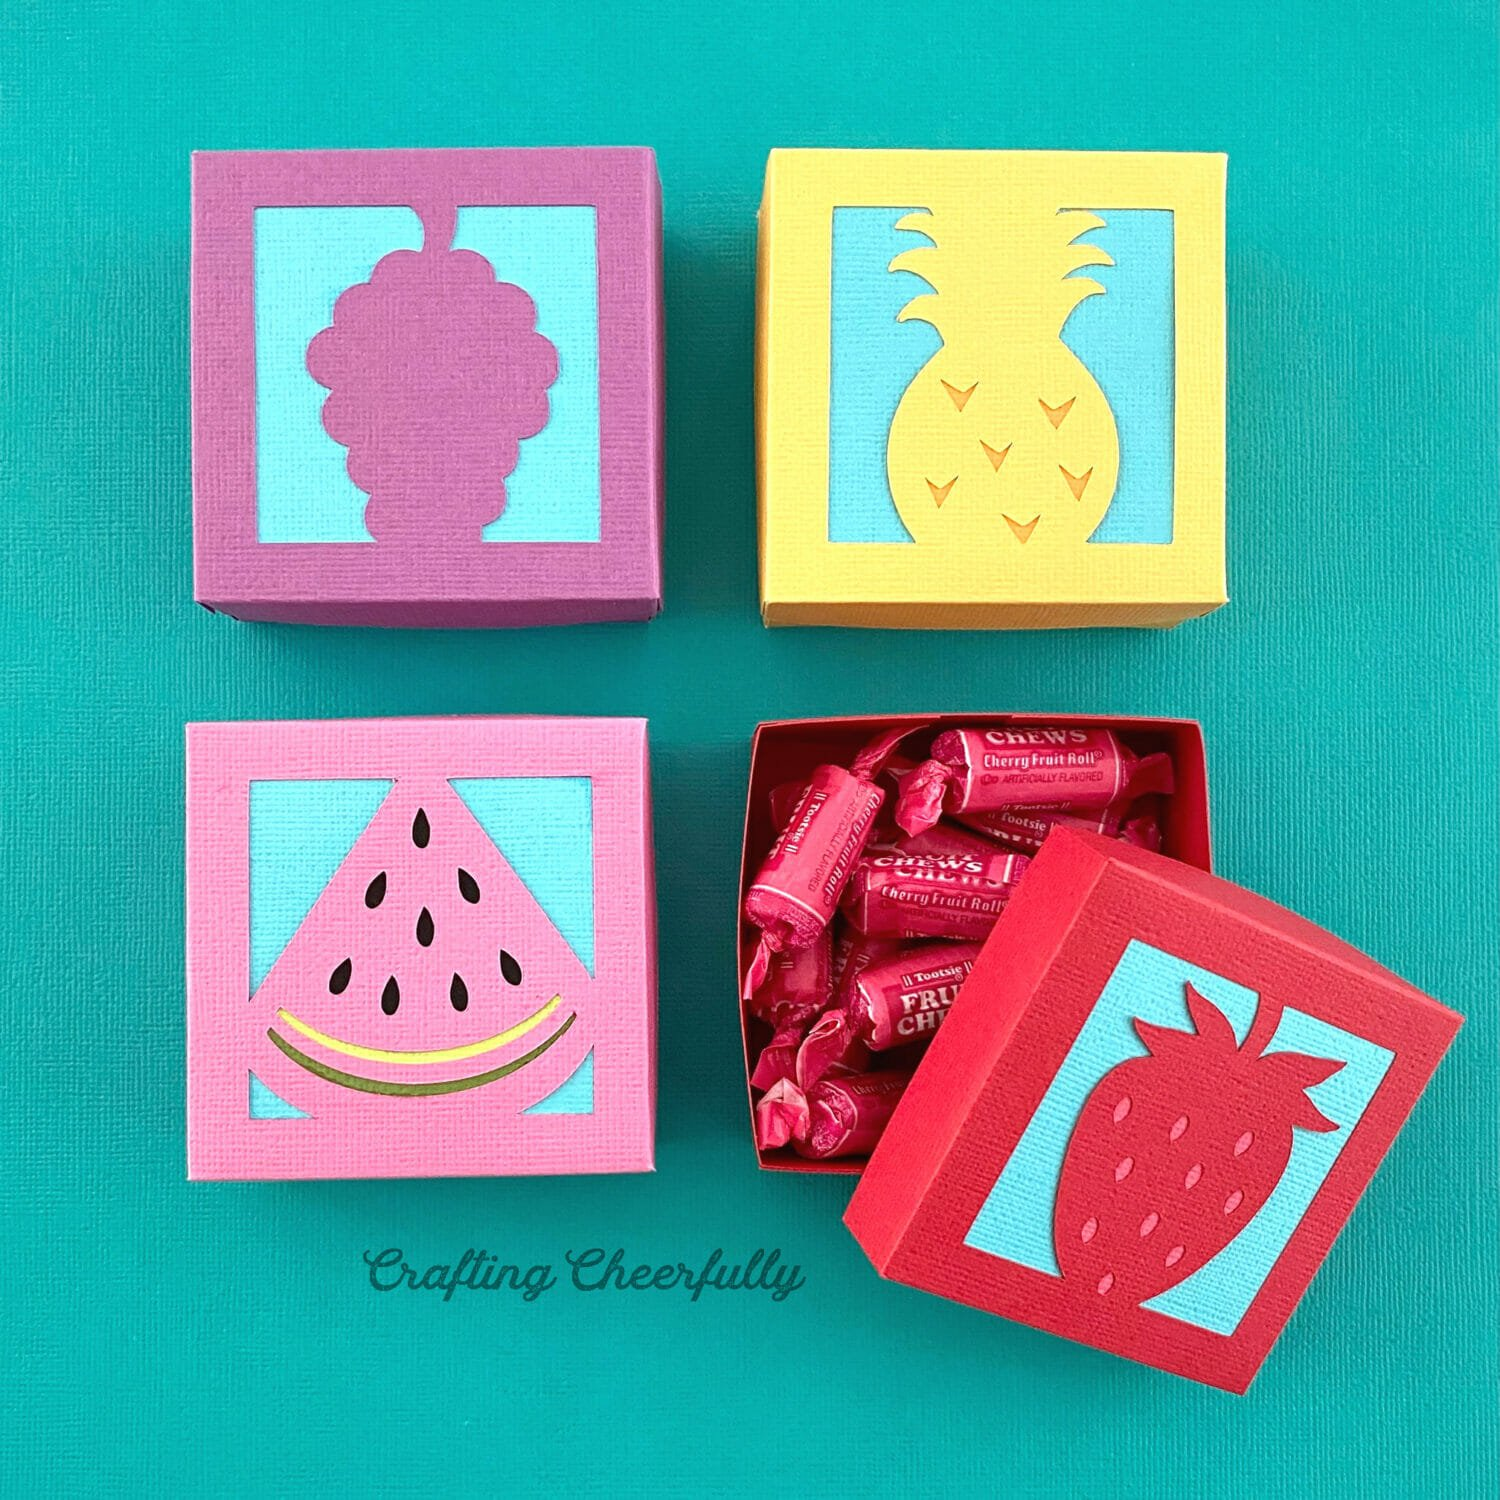 Four colorful boxes with fruit on them sit on a bright turquoise background.